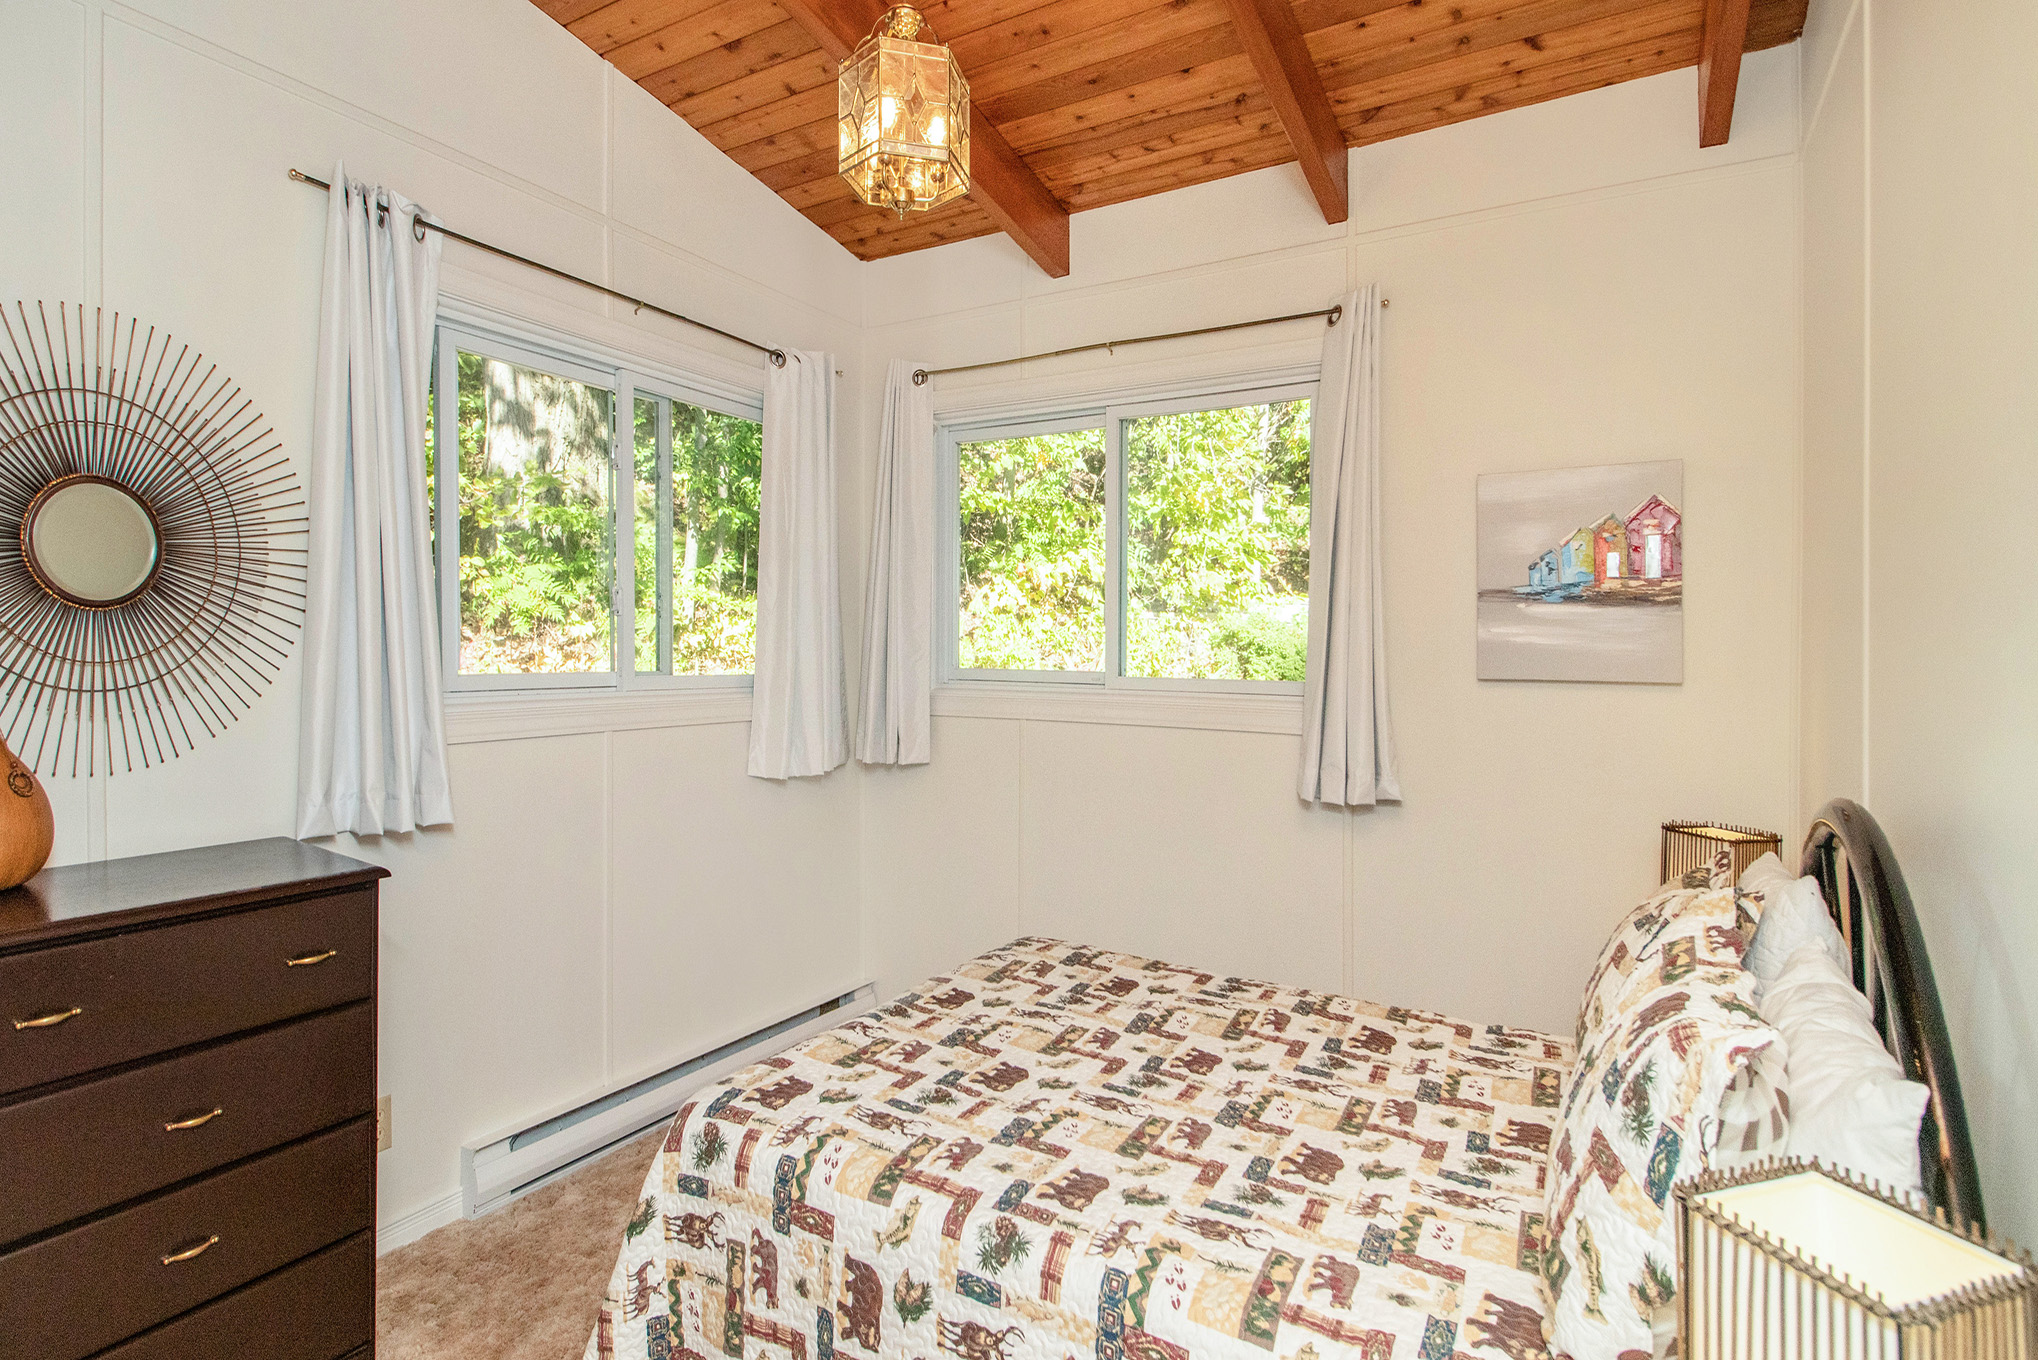 3rd bedroom of the home.  Peaceful and relaxing views of the forest.